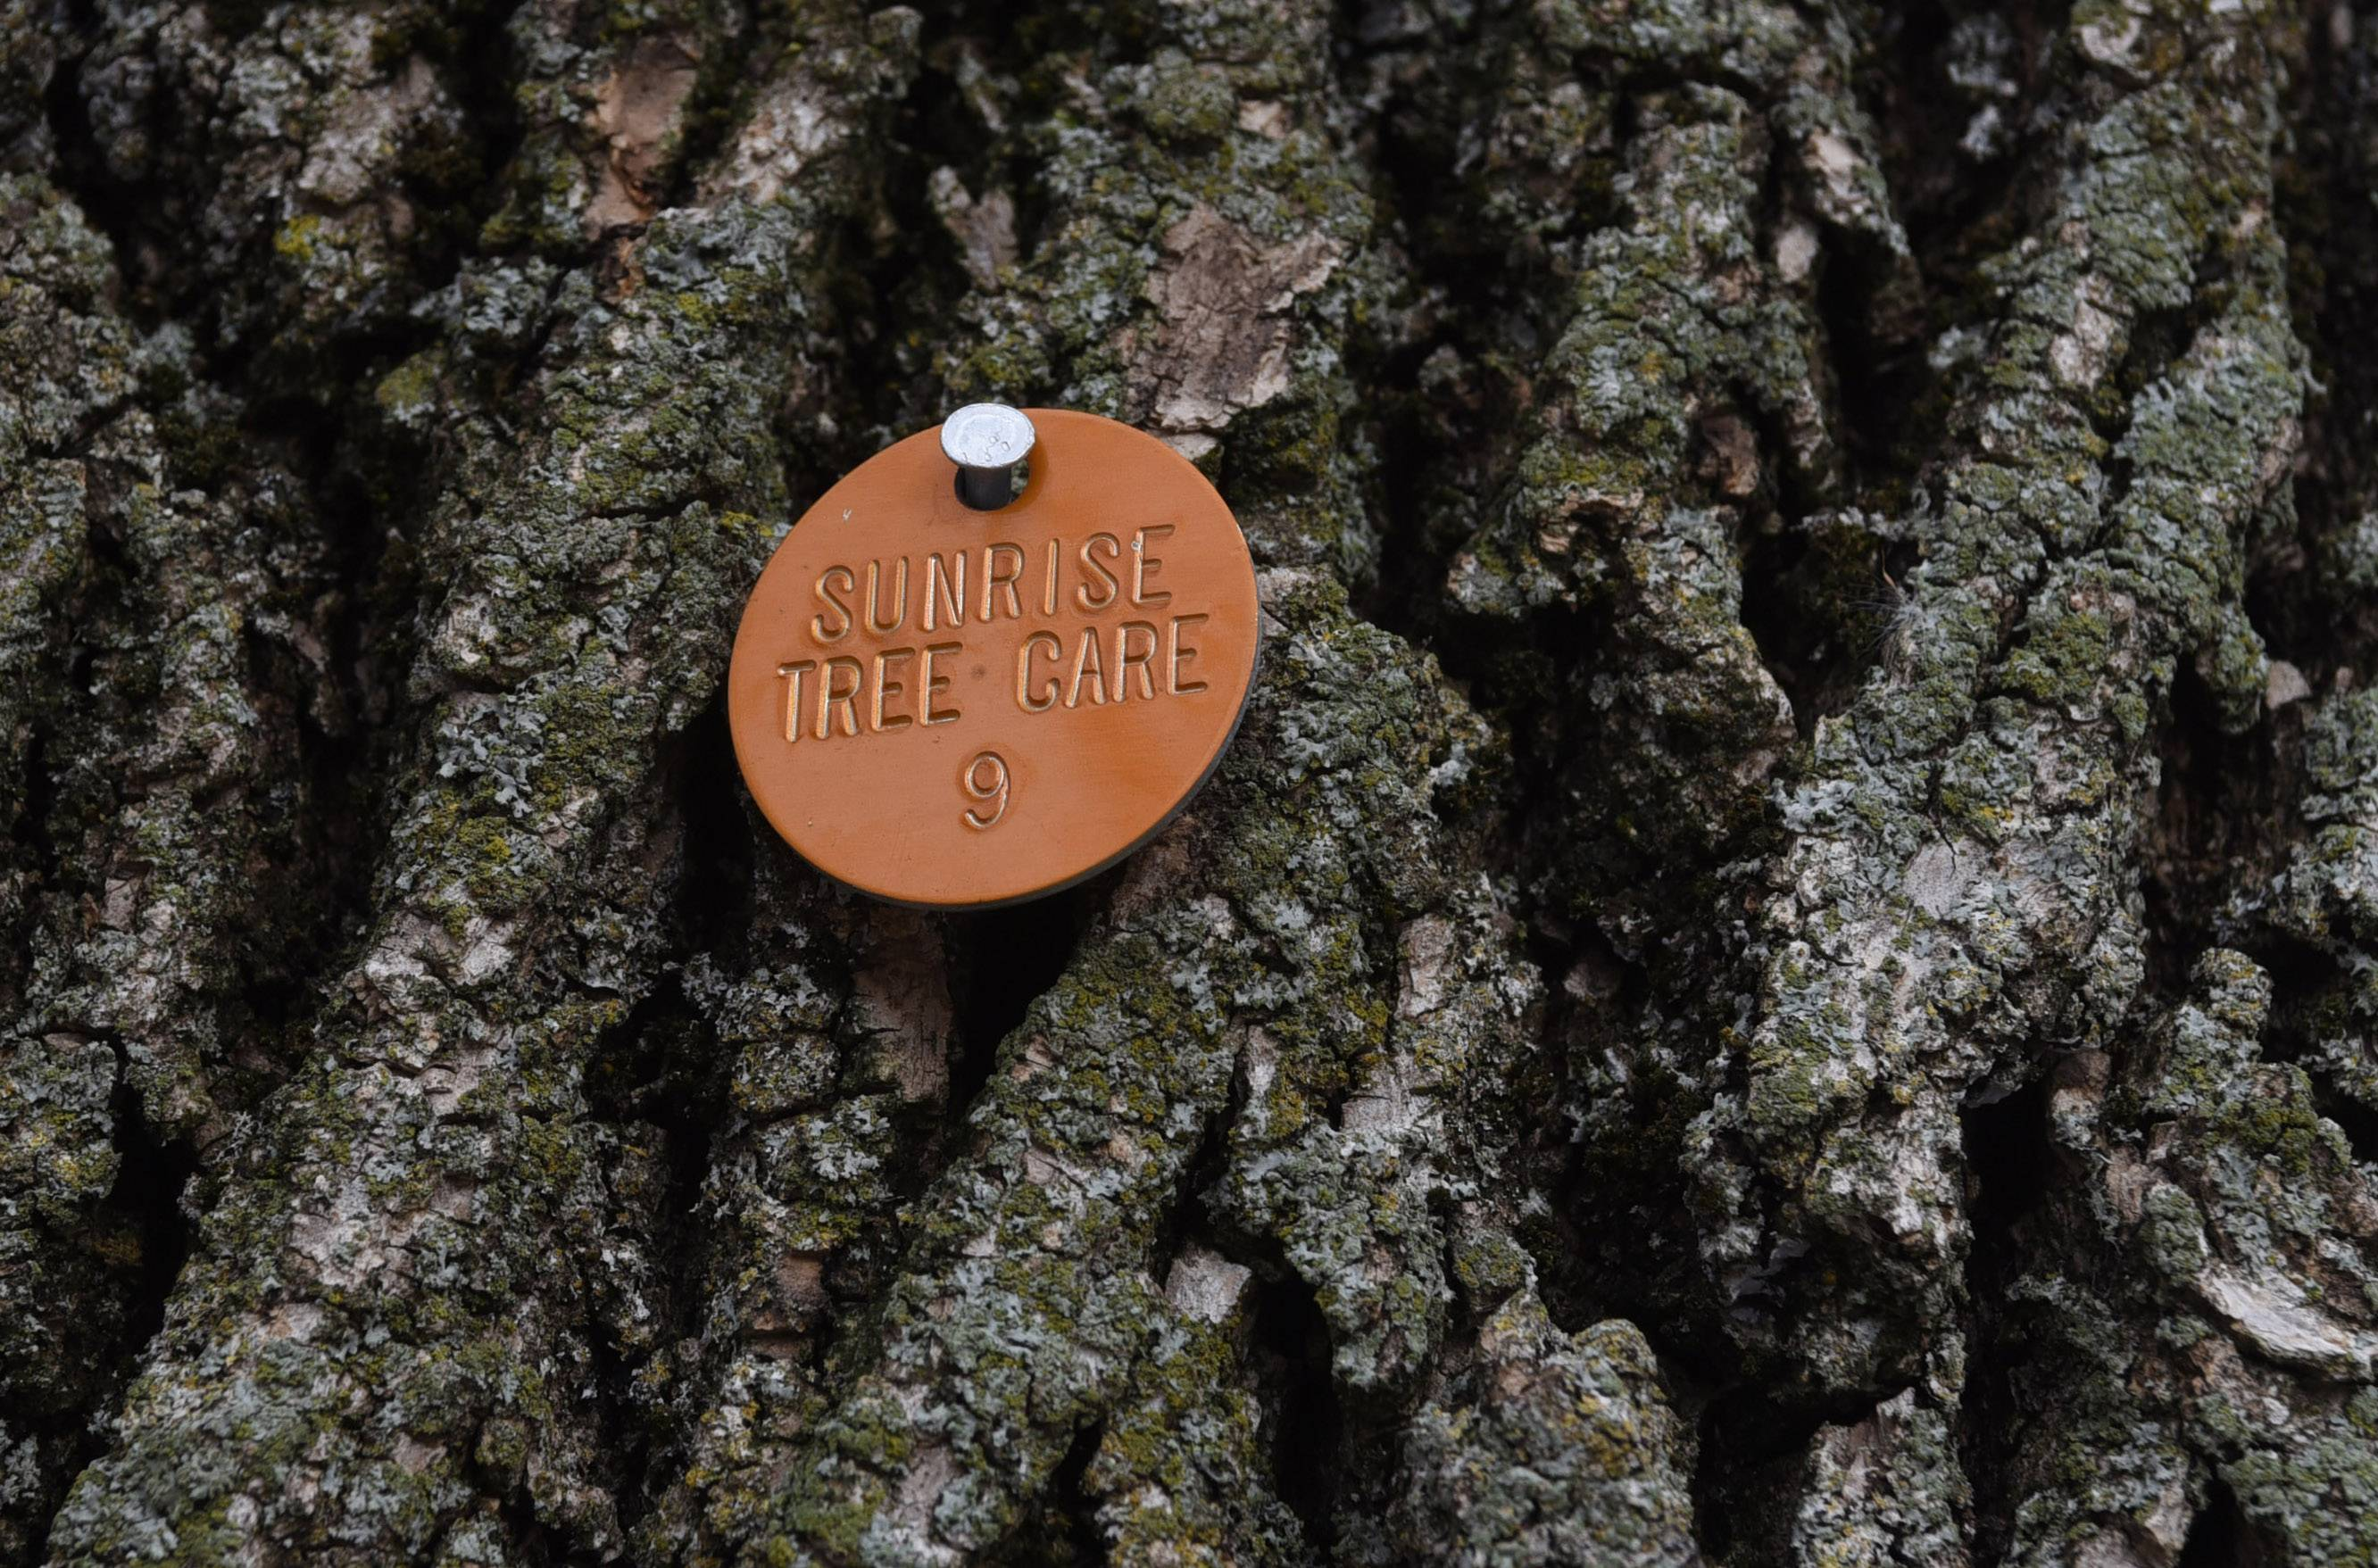 A tag installed by Sunrise Tree Care, the company treating some of the ash trees in Arlington Heights.